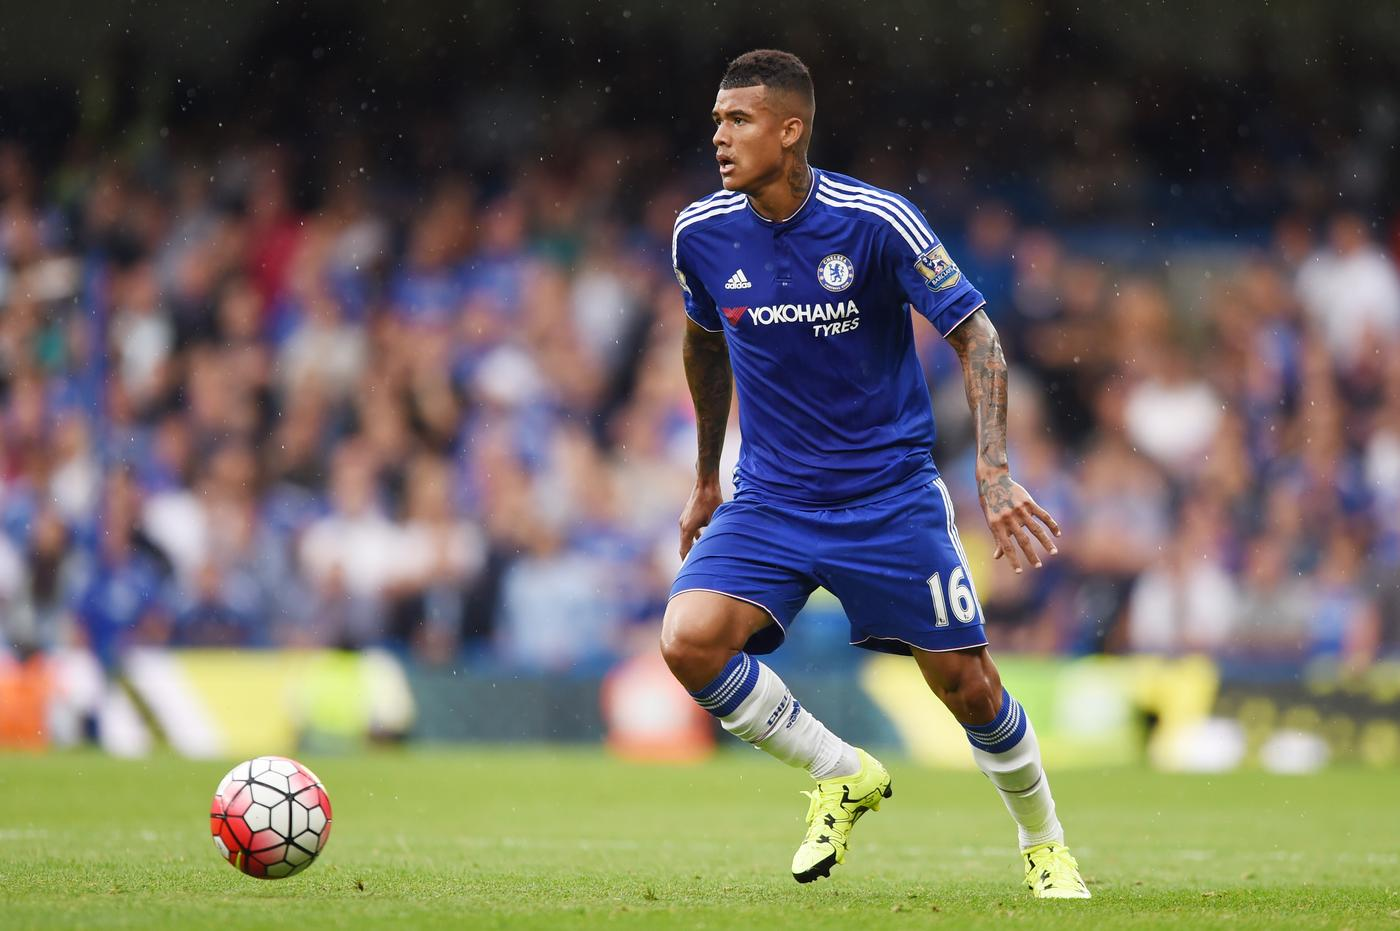 Jose Mourinho will be sending the wrong message if Chelsea leave out Ruben Loftus-Cheek and Robert Kenedy